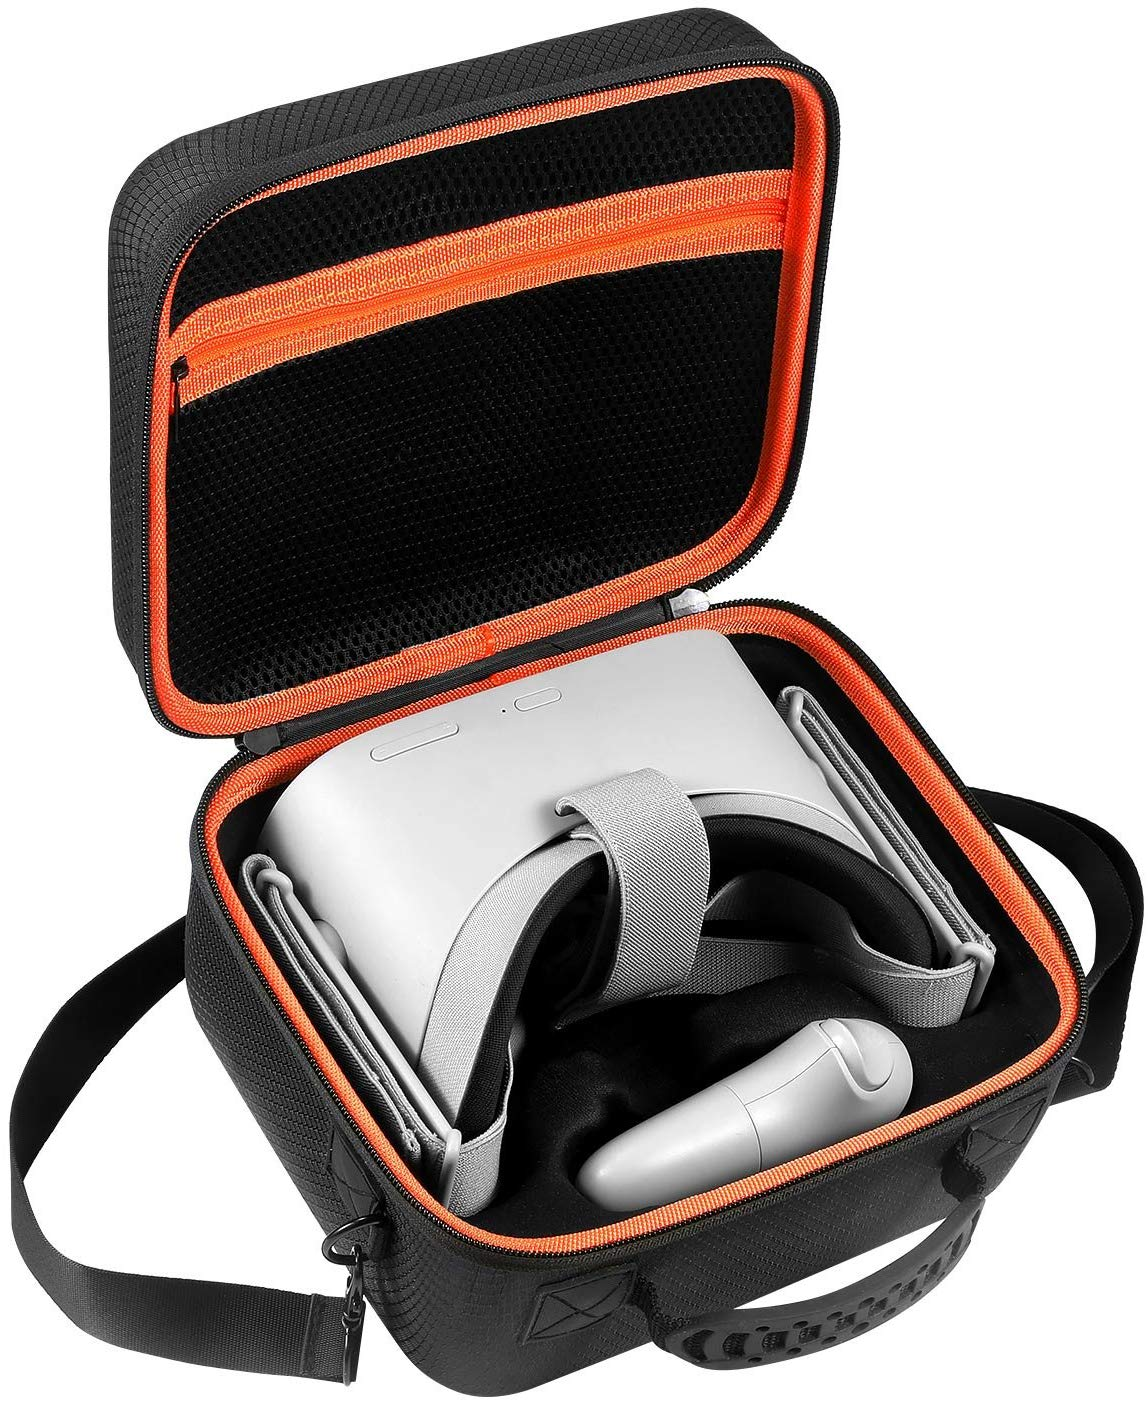 Oculus Go Case by DACCKIT - Travel and Storage Carrying Case for Oculus Go Virtual Reality Headset, Remote Controller and other Accessories